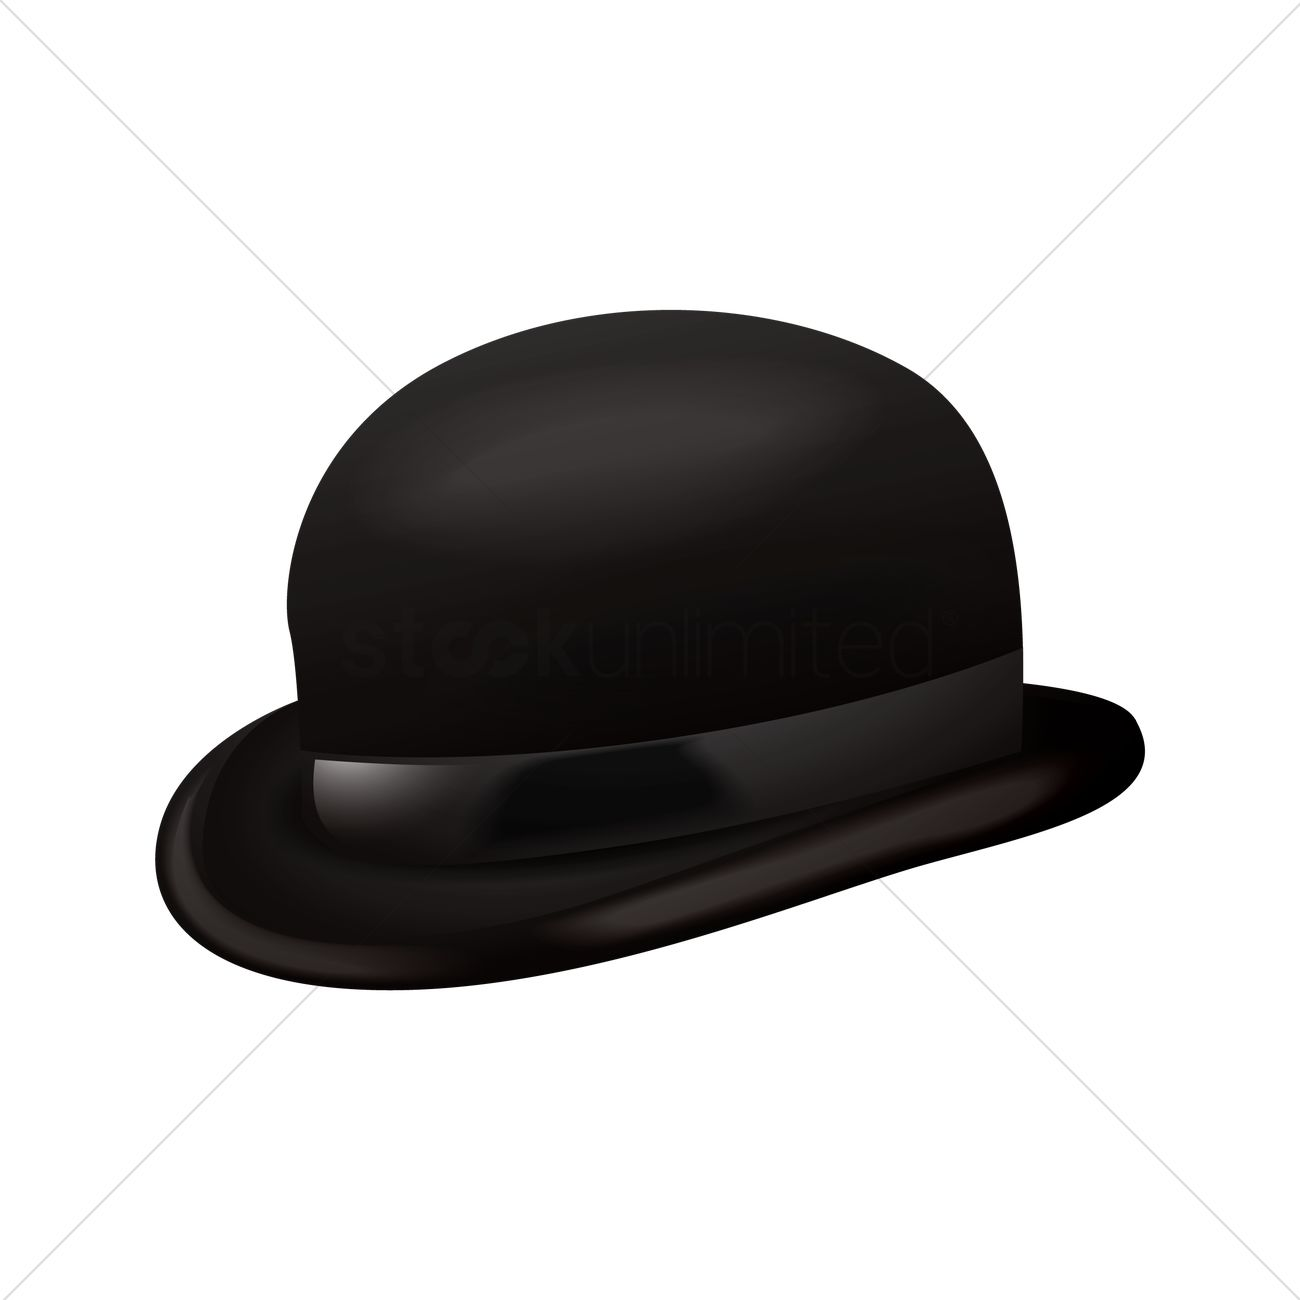 Hat Vector Image - 1806480   StockUnlimited